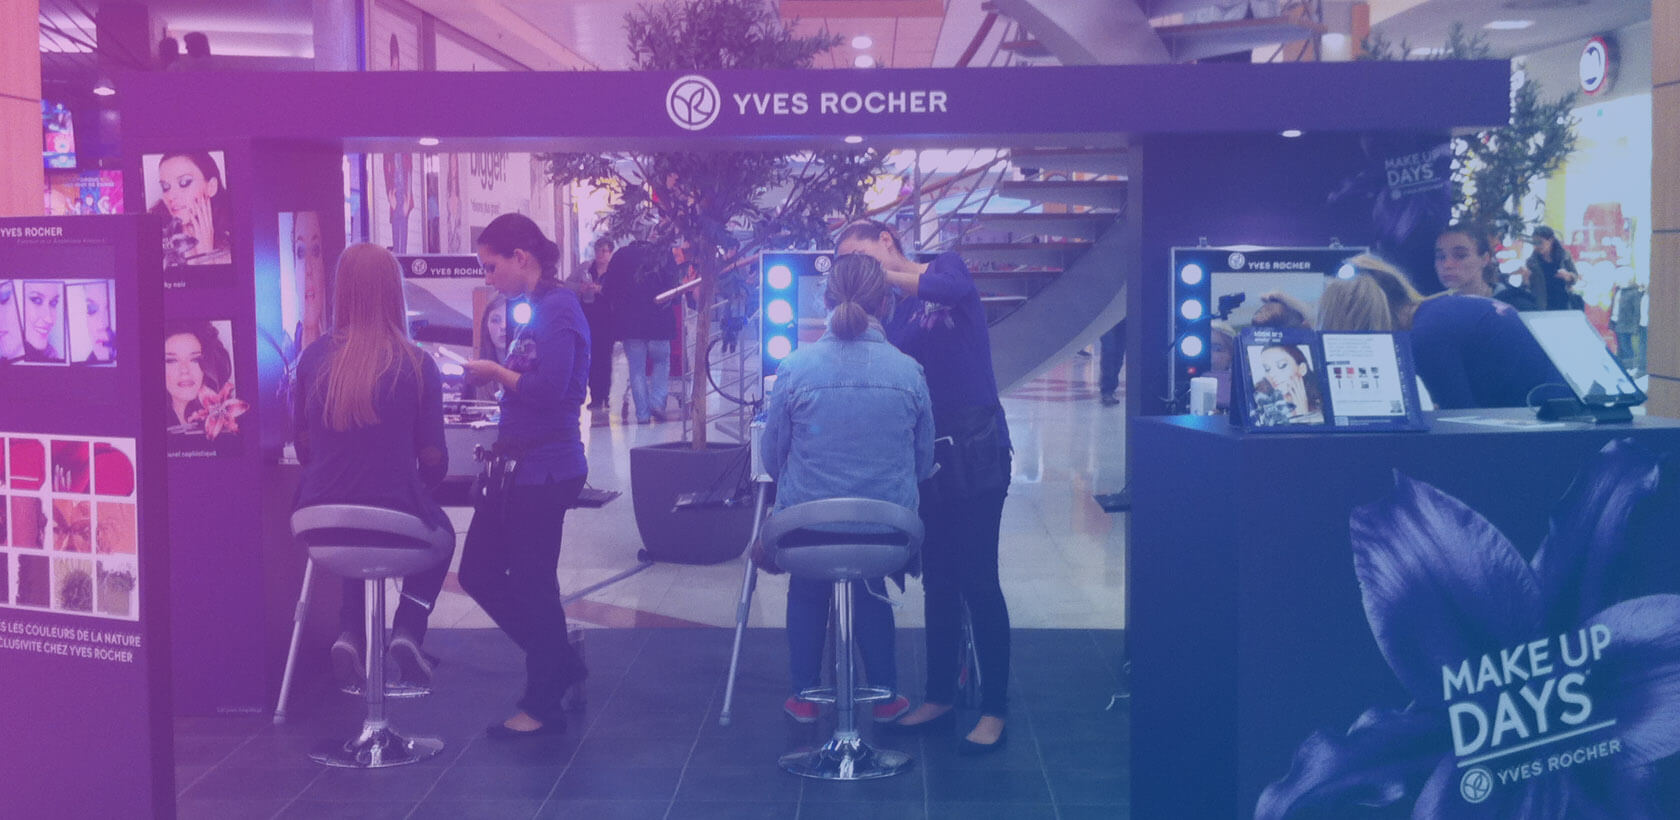 Yves Rocher Make Up Days - Shopping Center with Globe